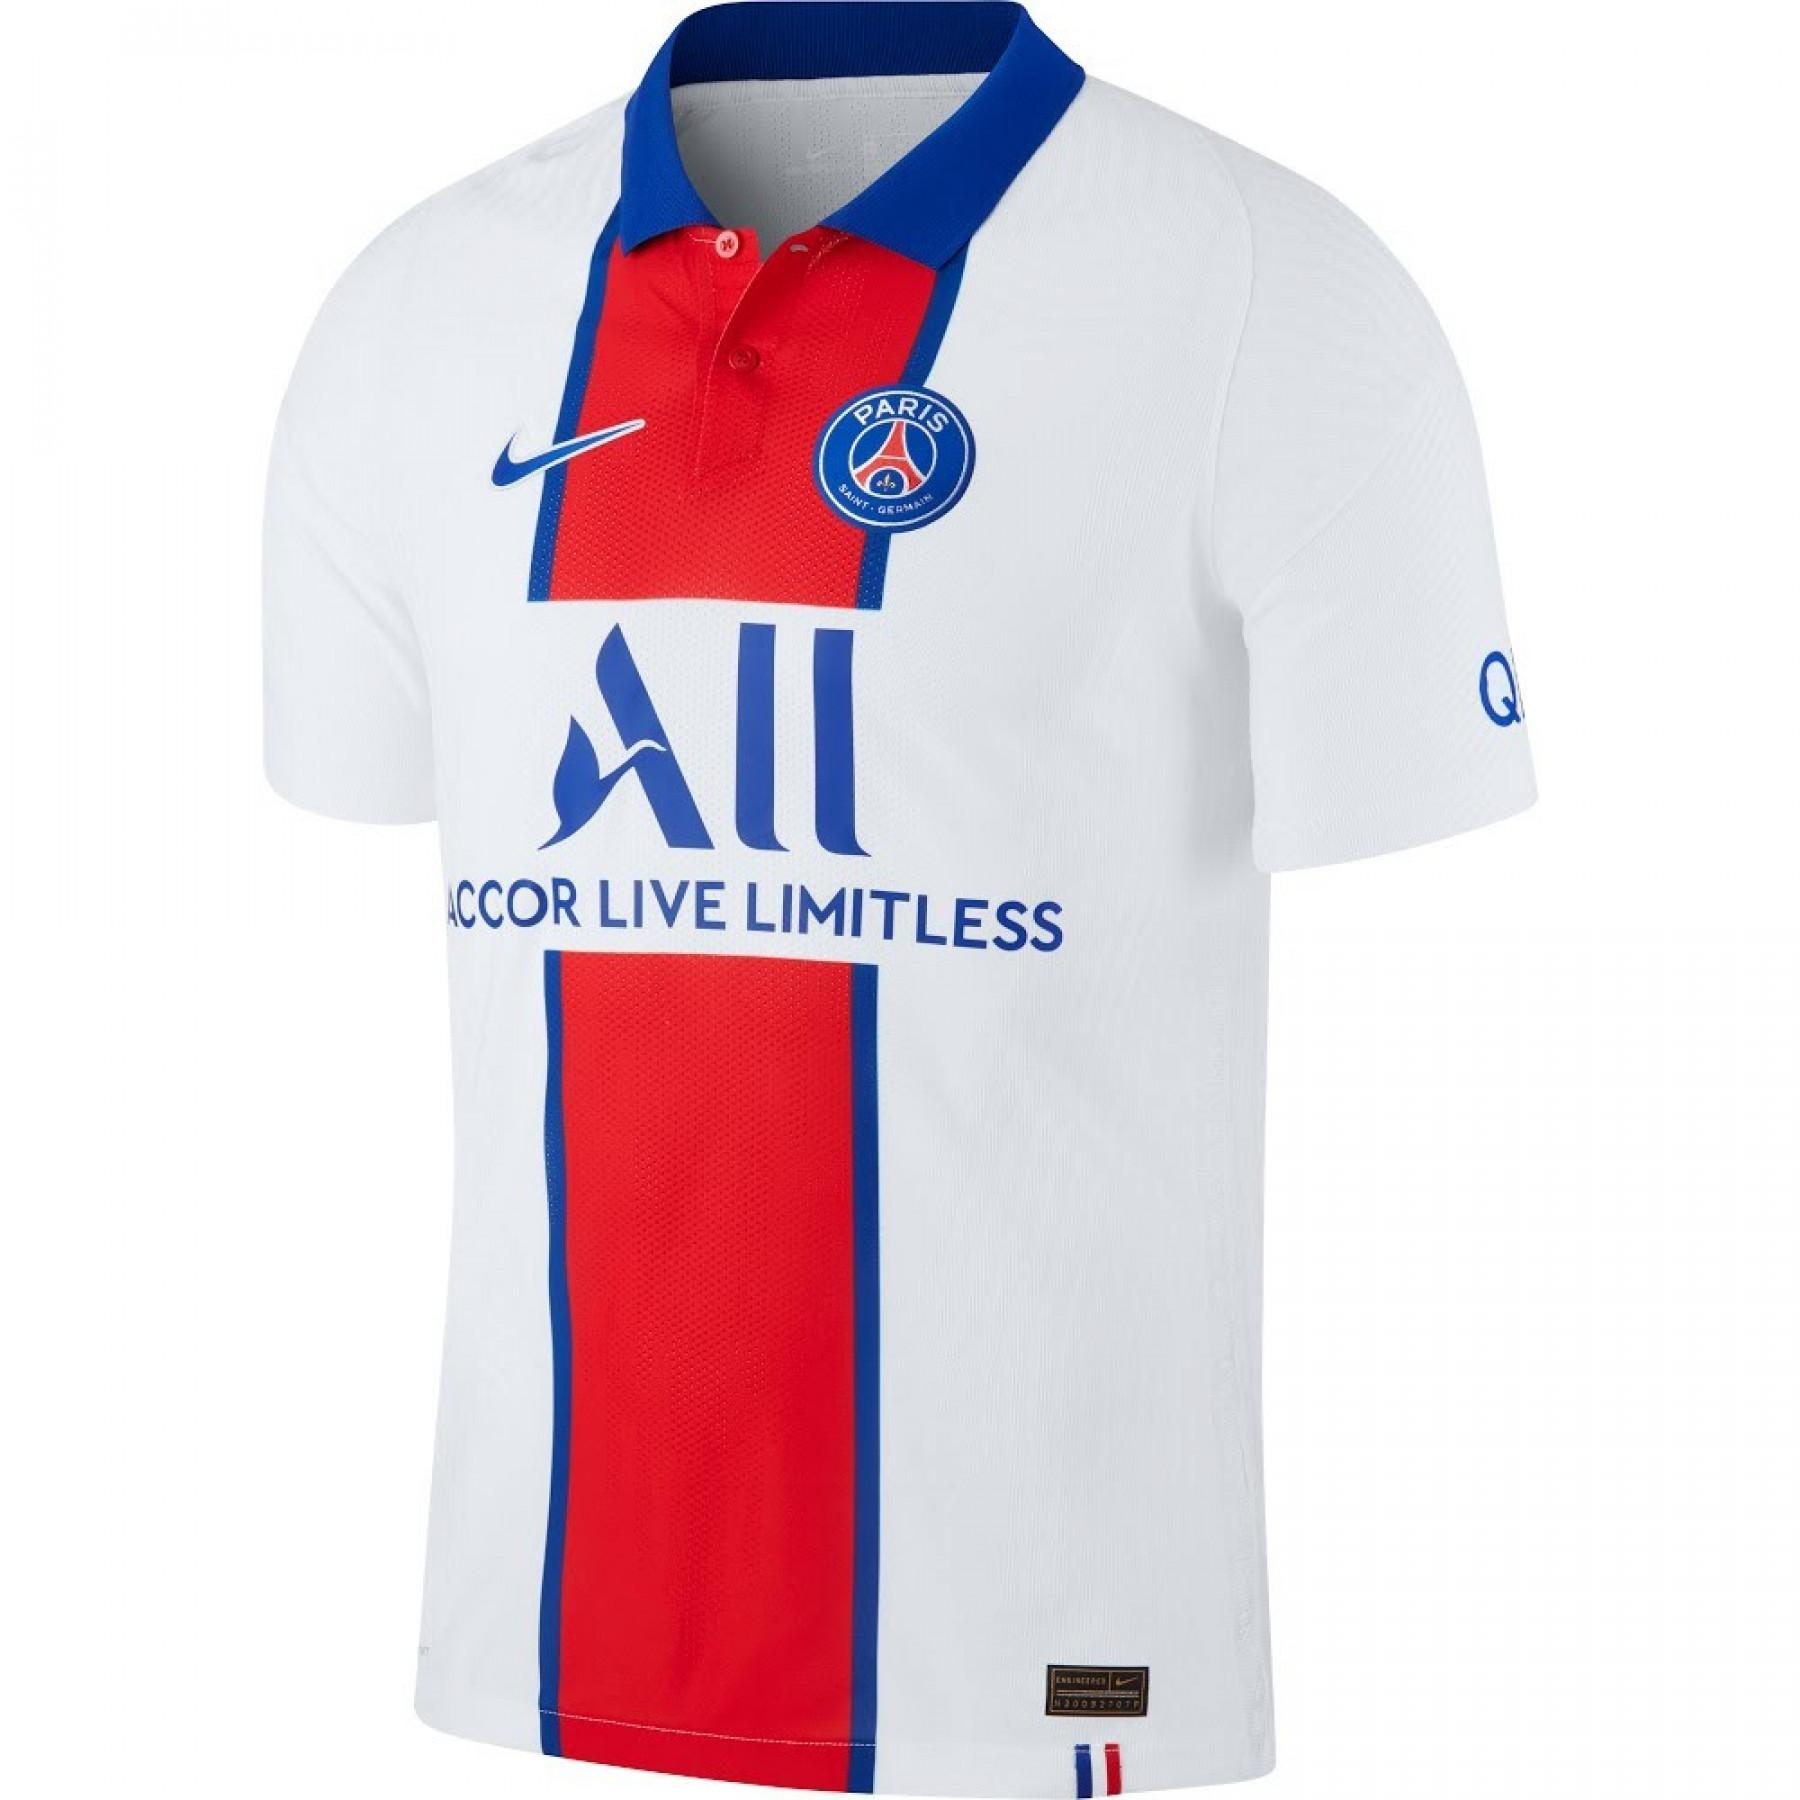 PSG Vapor Match 2020/21 away shirt